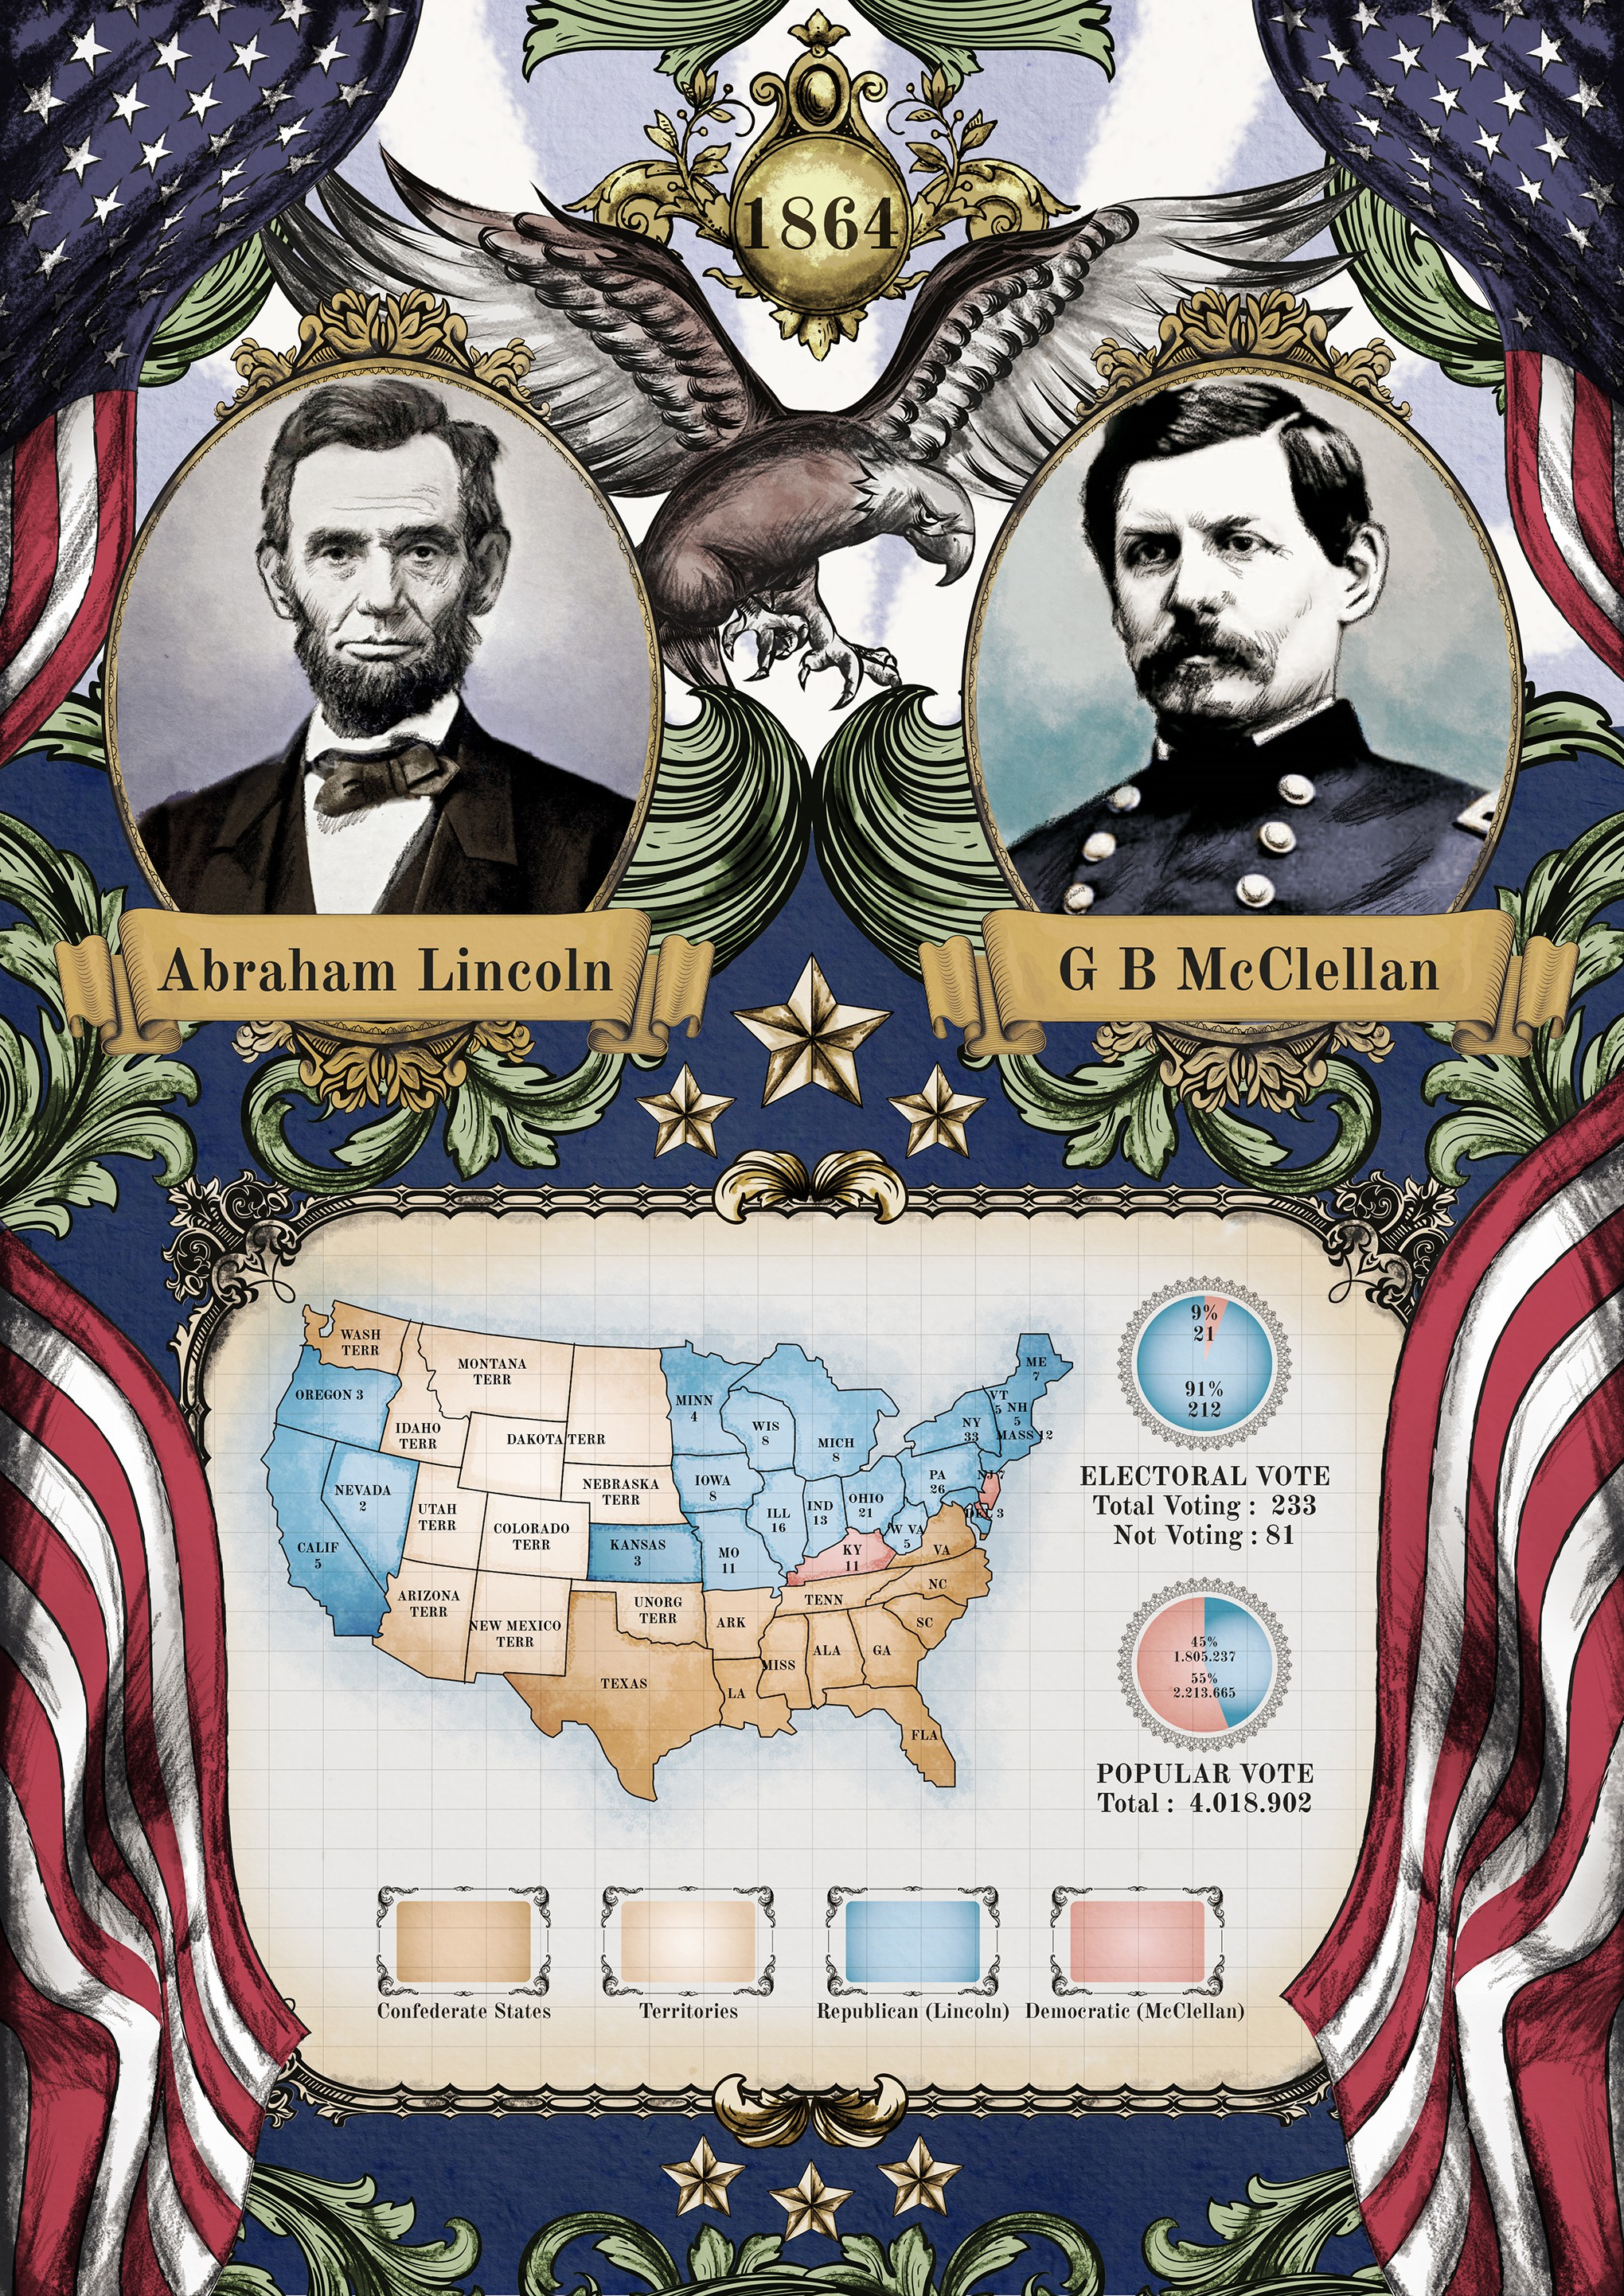 Rustic 1864 United States Presidential Election Map Design